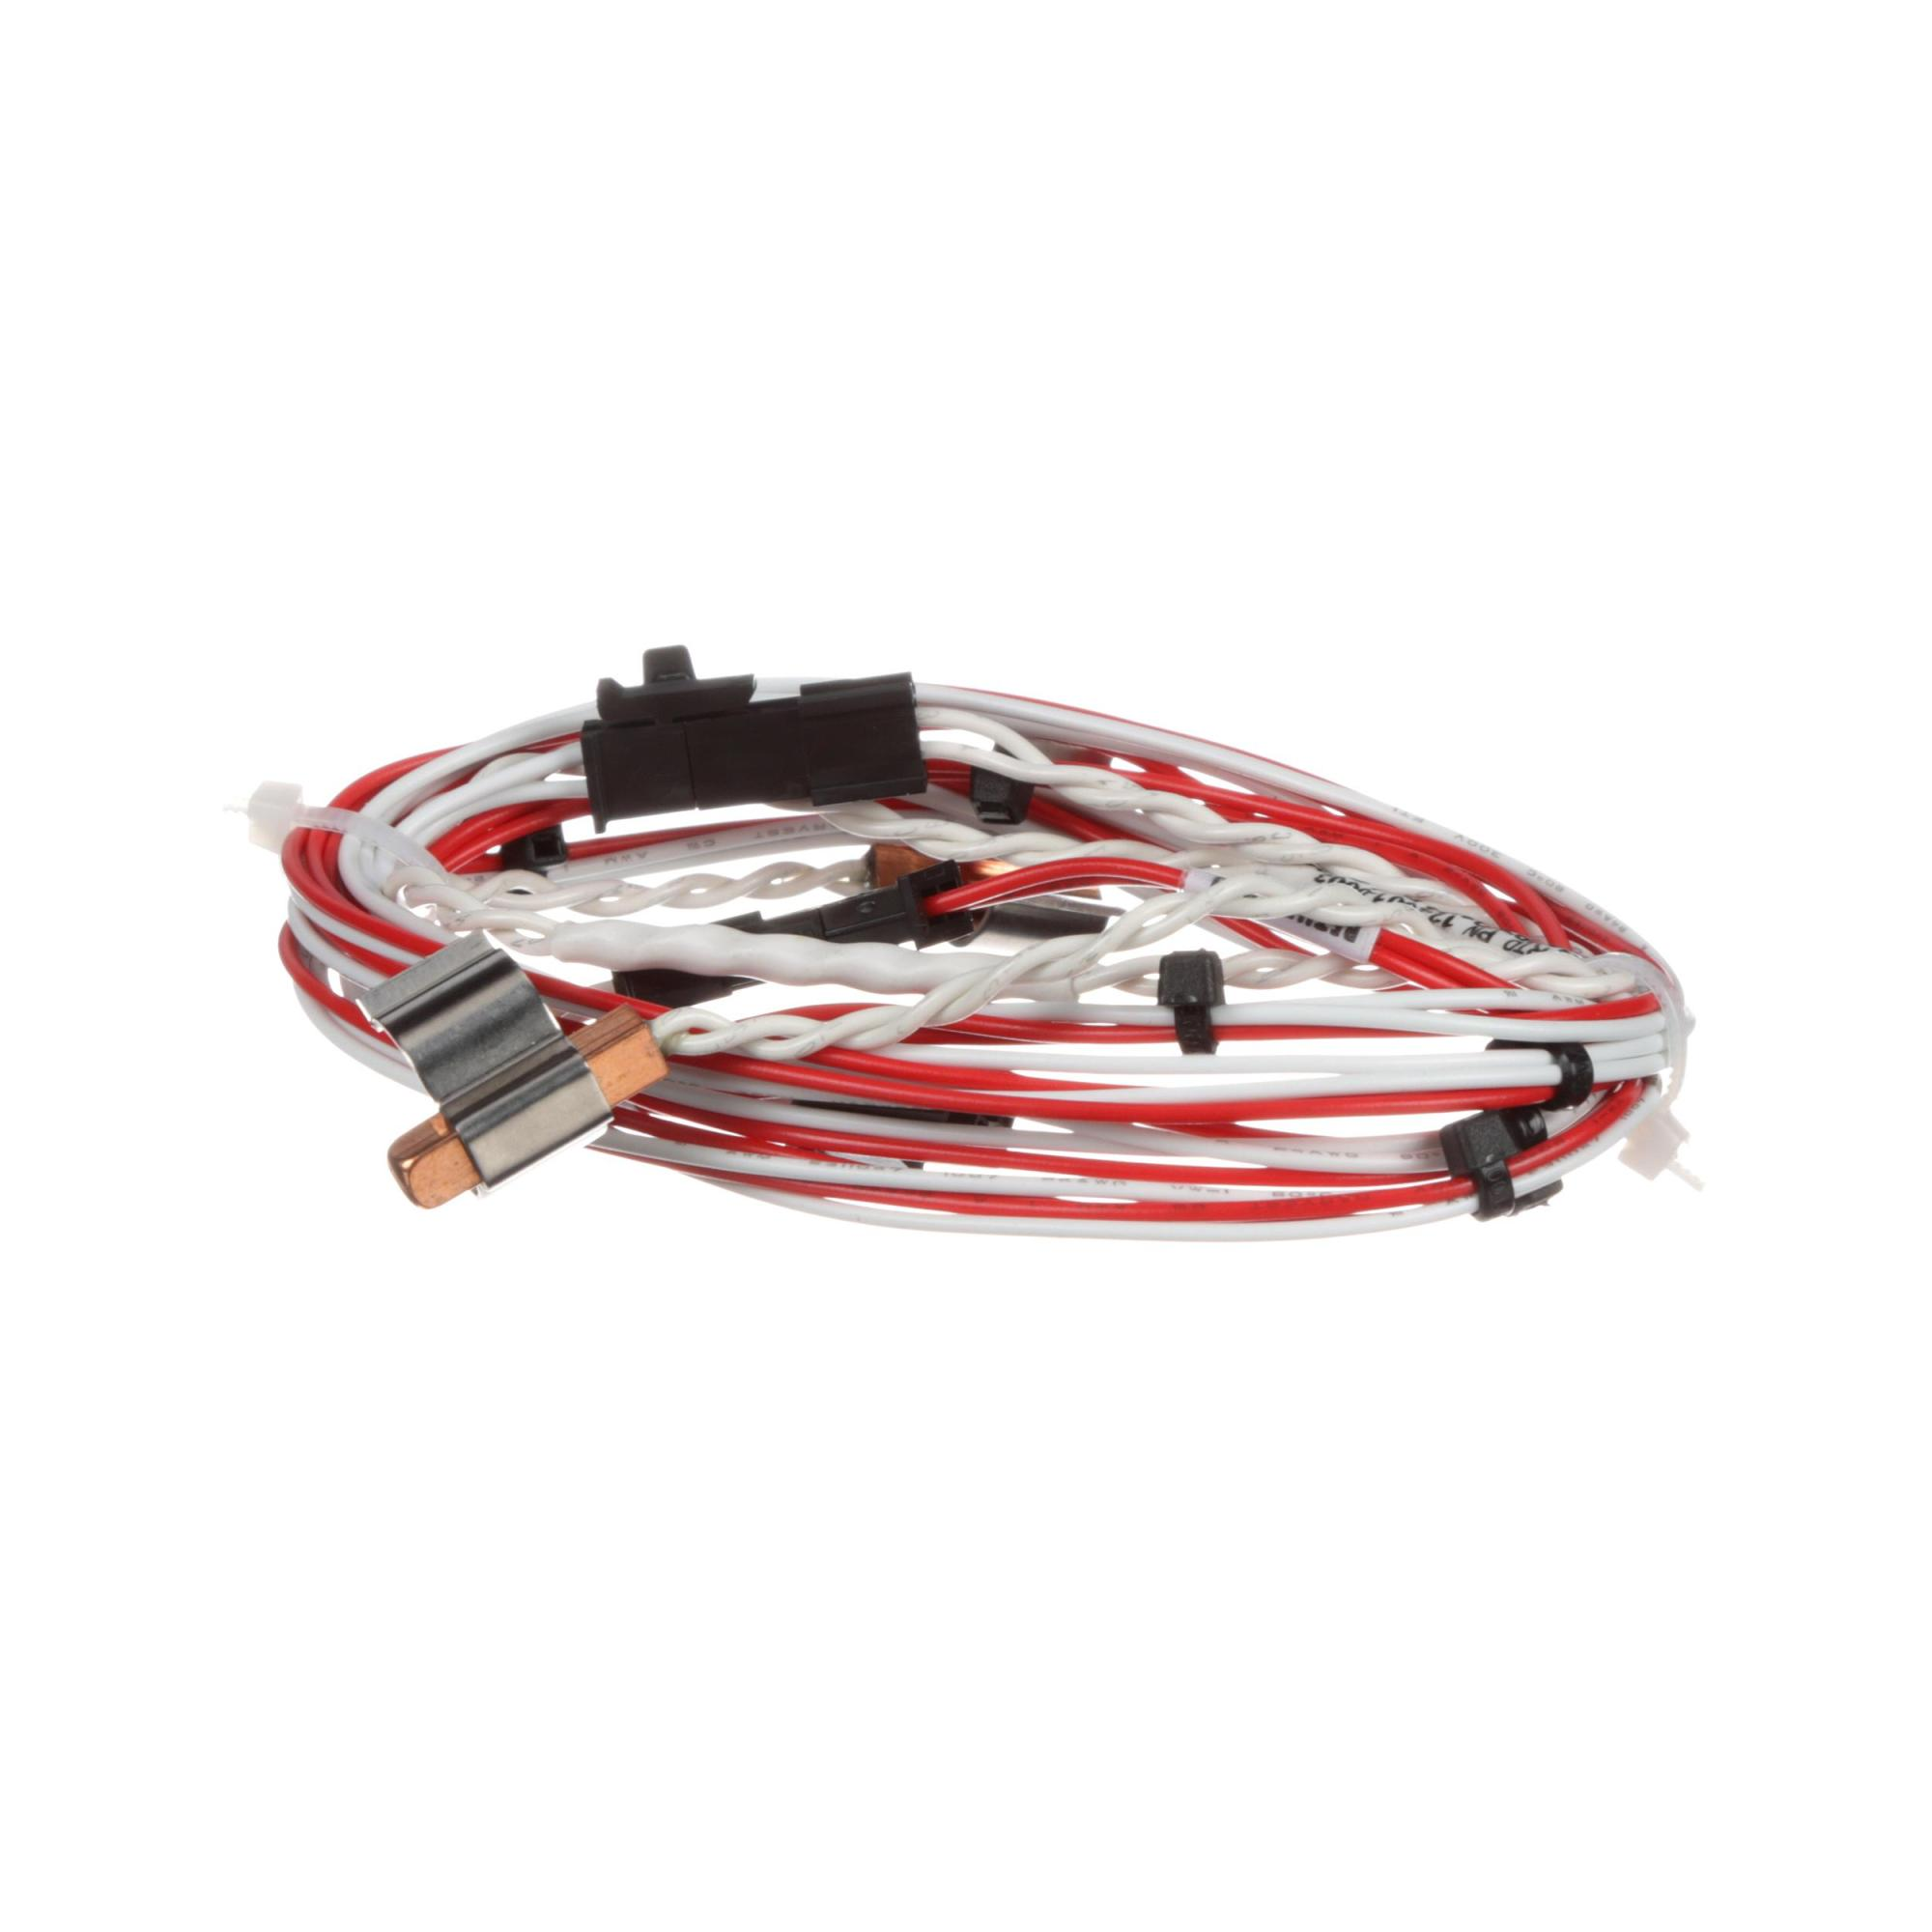 hight resolution of buy oem to optimize performance fbd wire harness